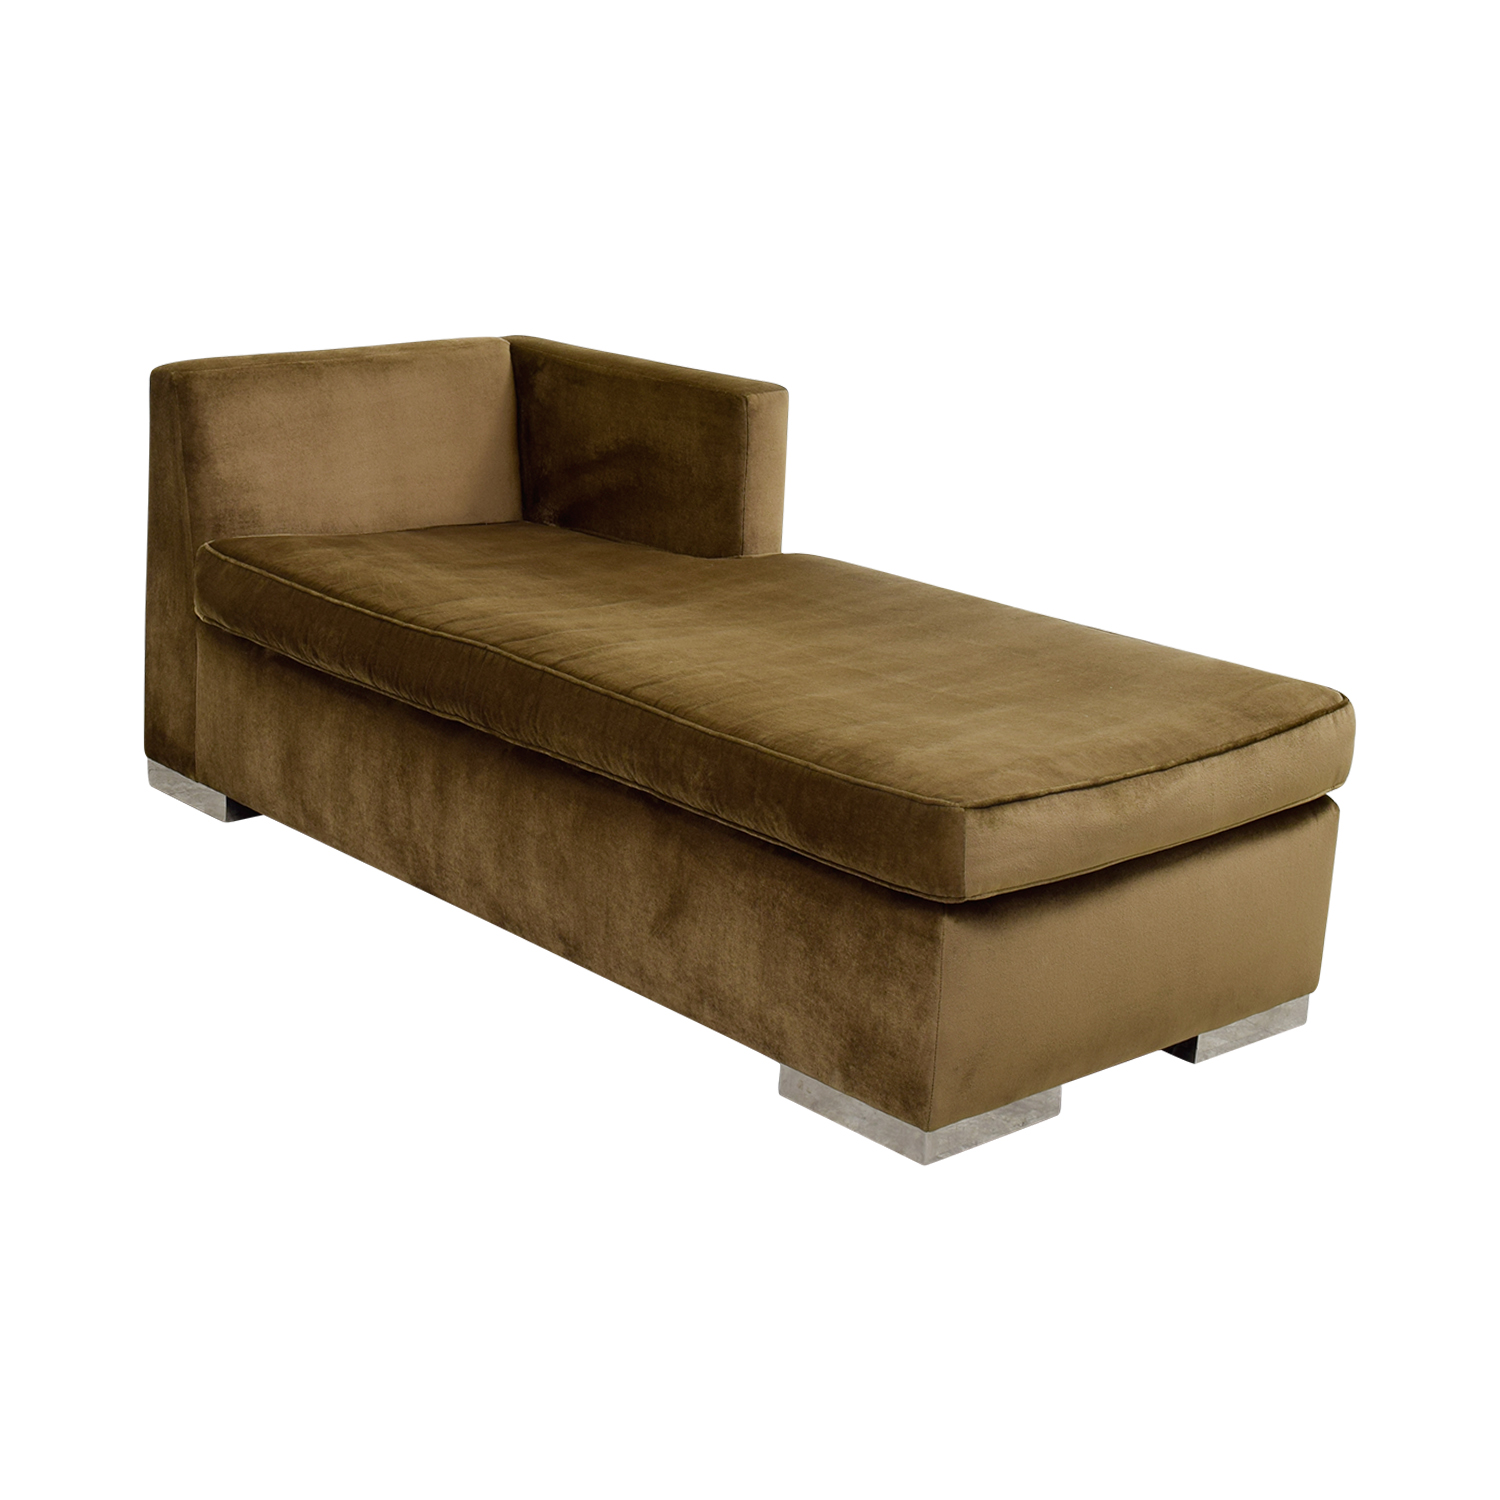 Leija Designs Leija Designs Brown Mohair Chaise Lounger dimensions